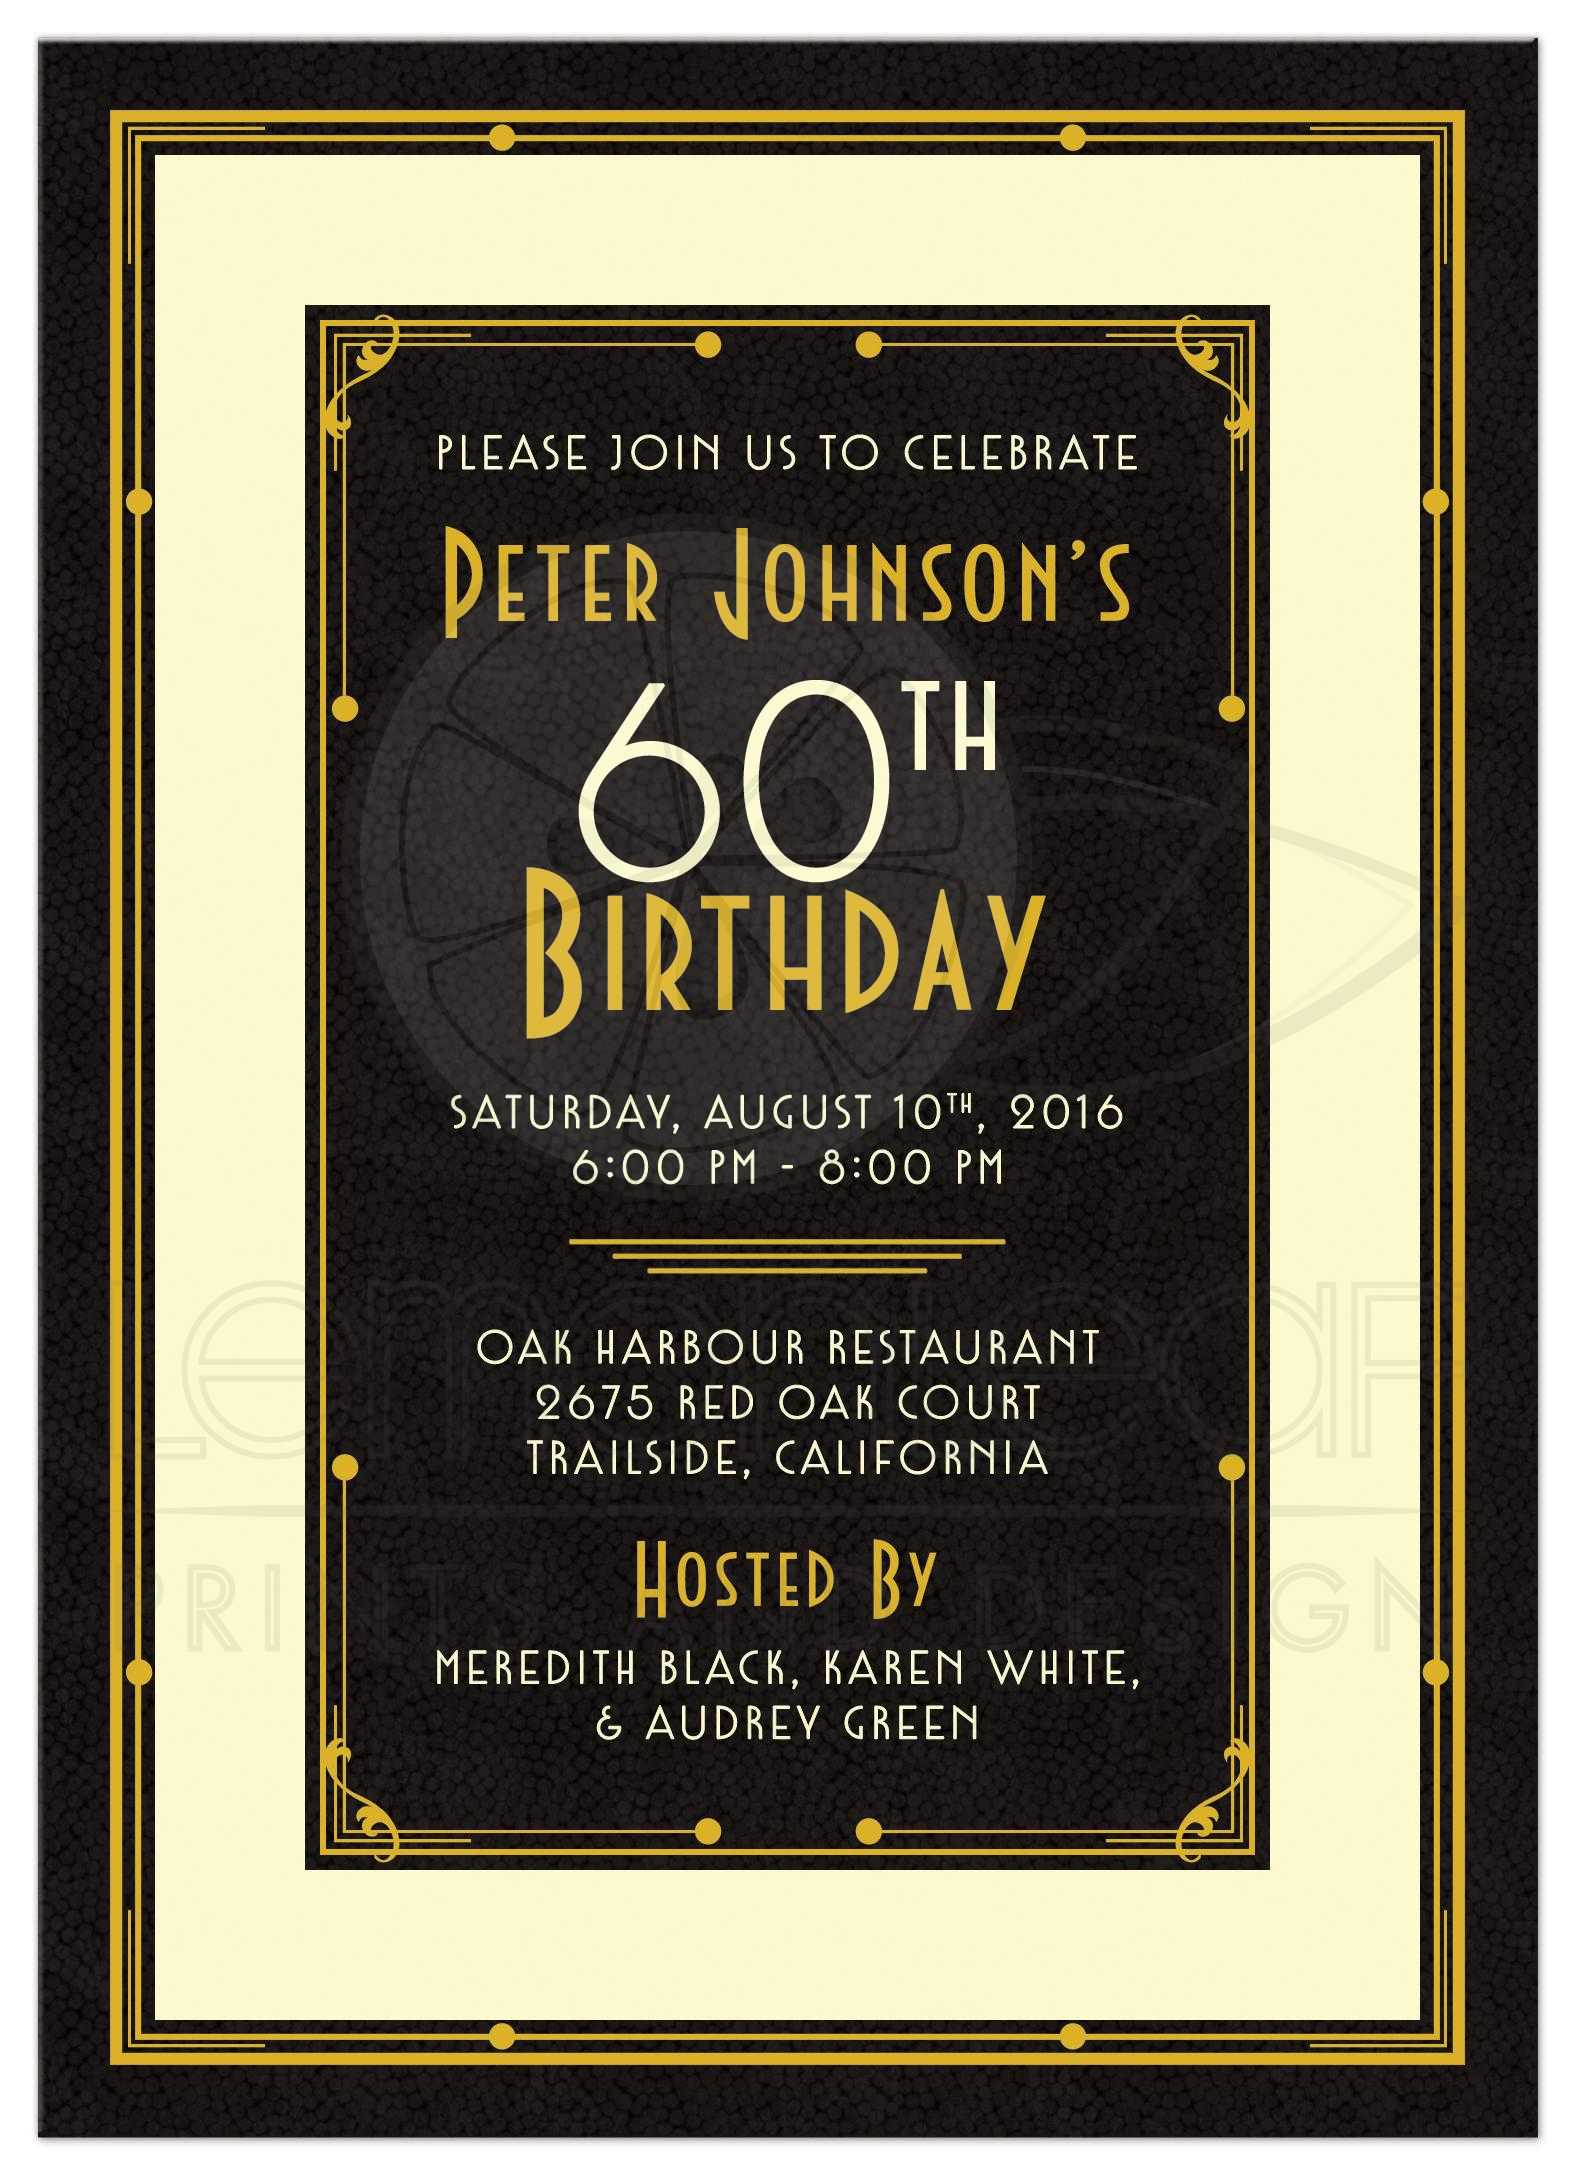 Mans 60th birthday invitation black gold art deco elegant black gold and ivory art deco mans 60th birthday invitation filmwisefo Choice Image